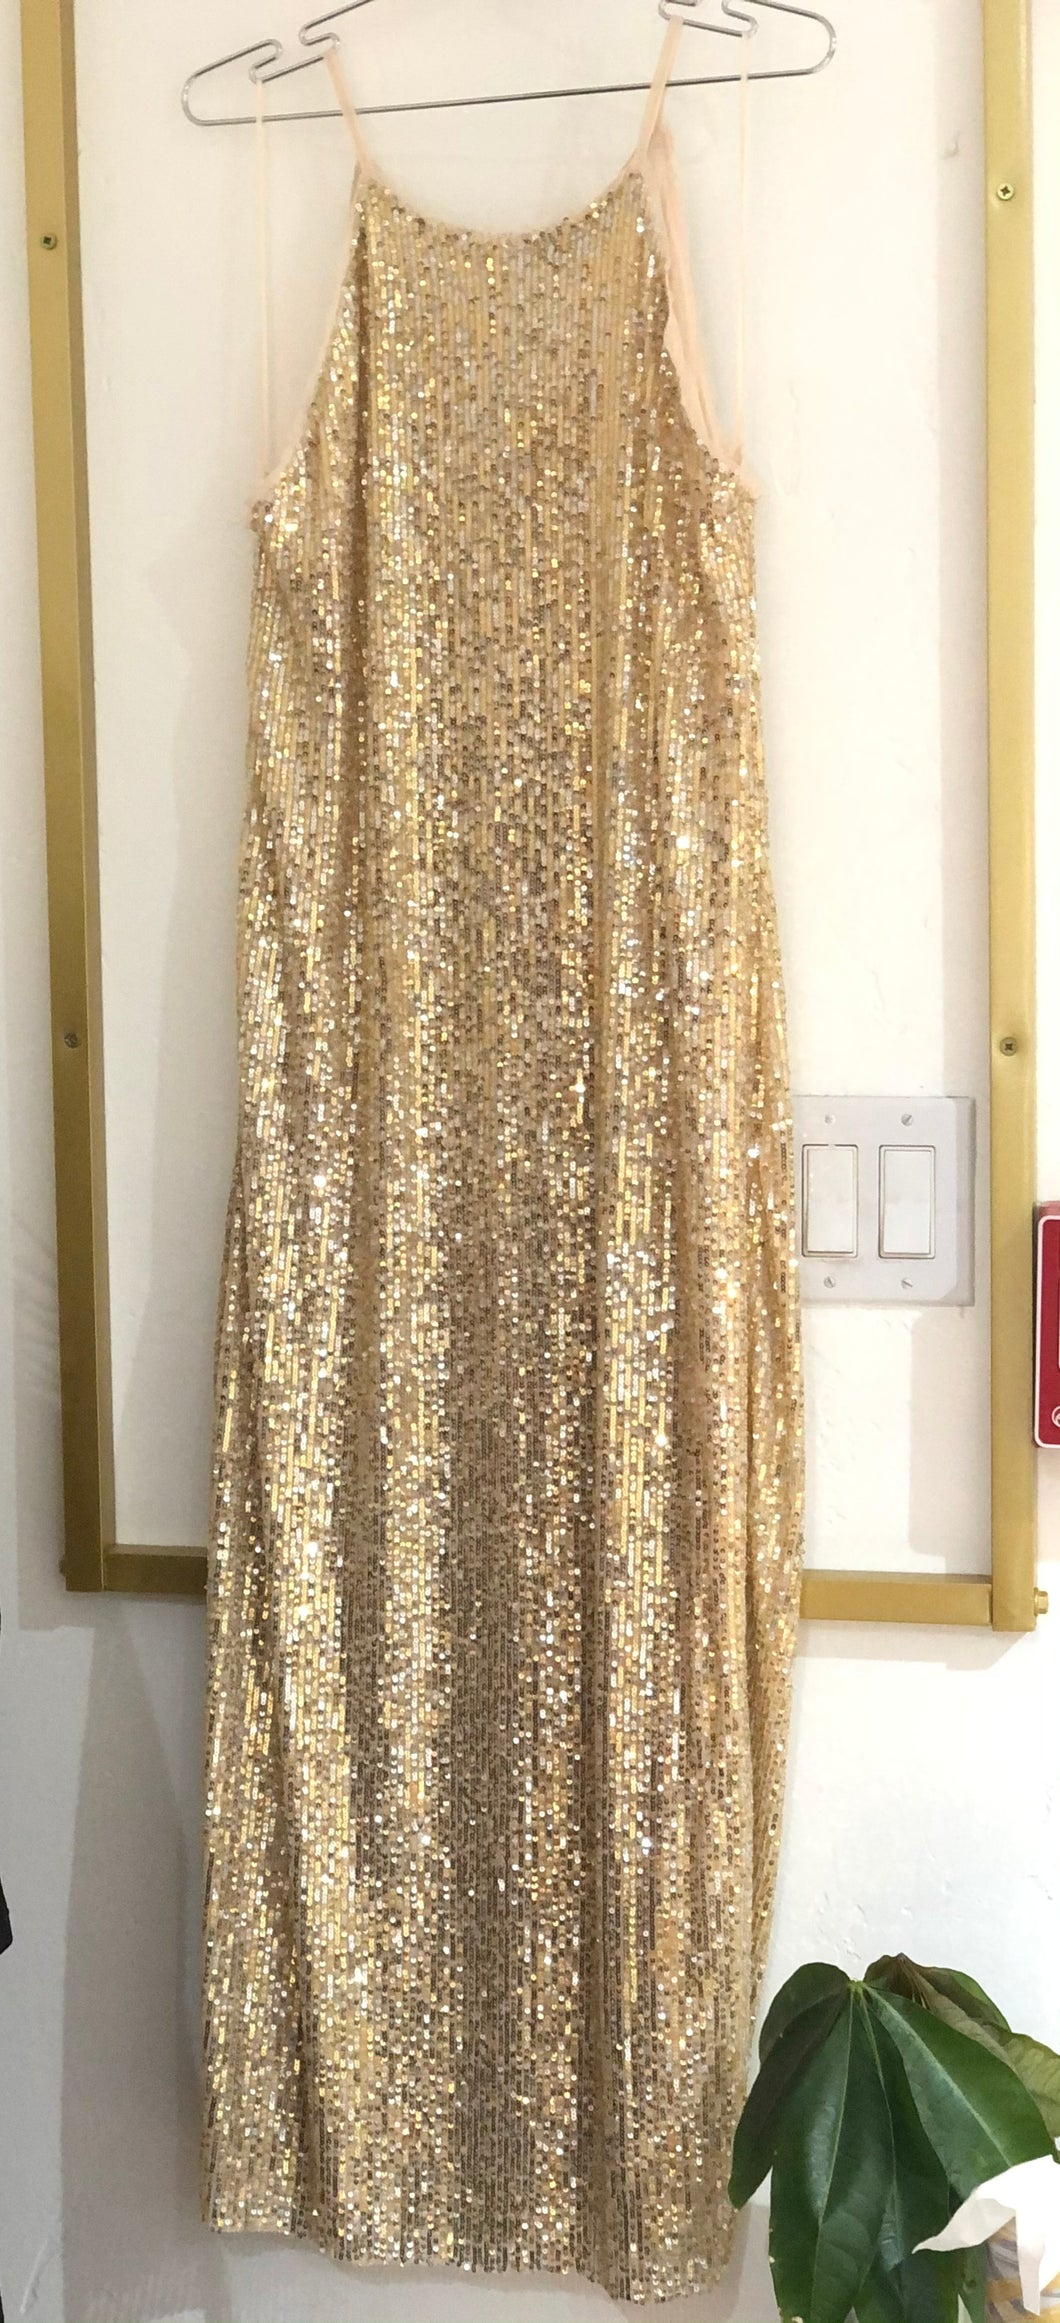 Halter Neck Sequin Dress